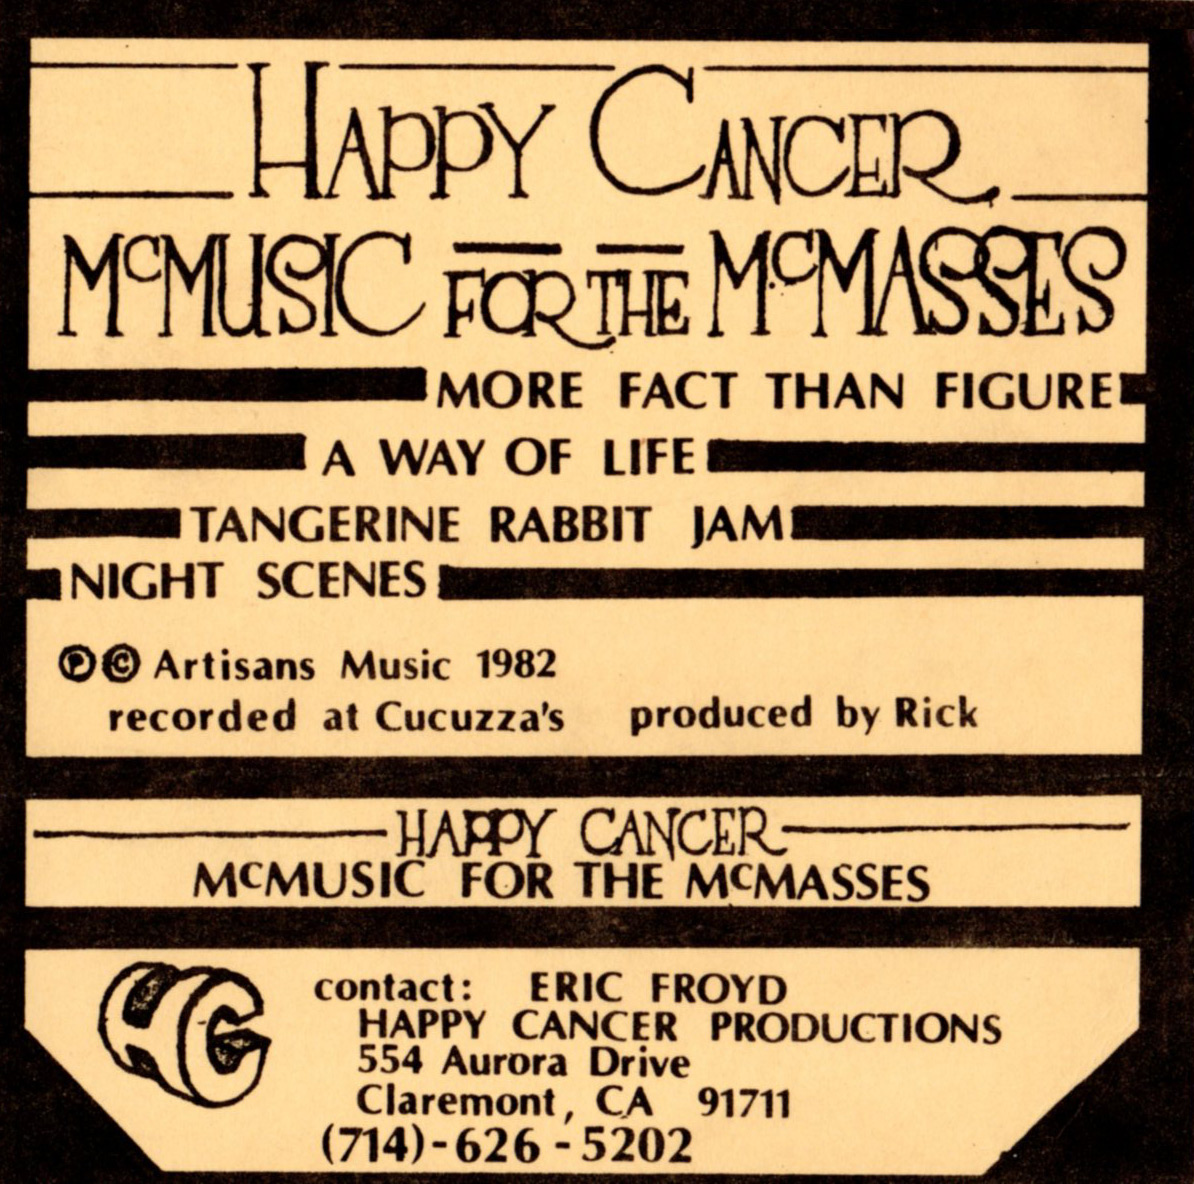 Happy Cancer: McMusic for the McMaesses